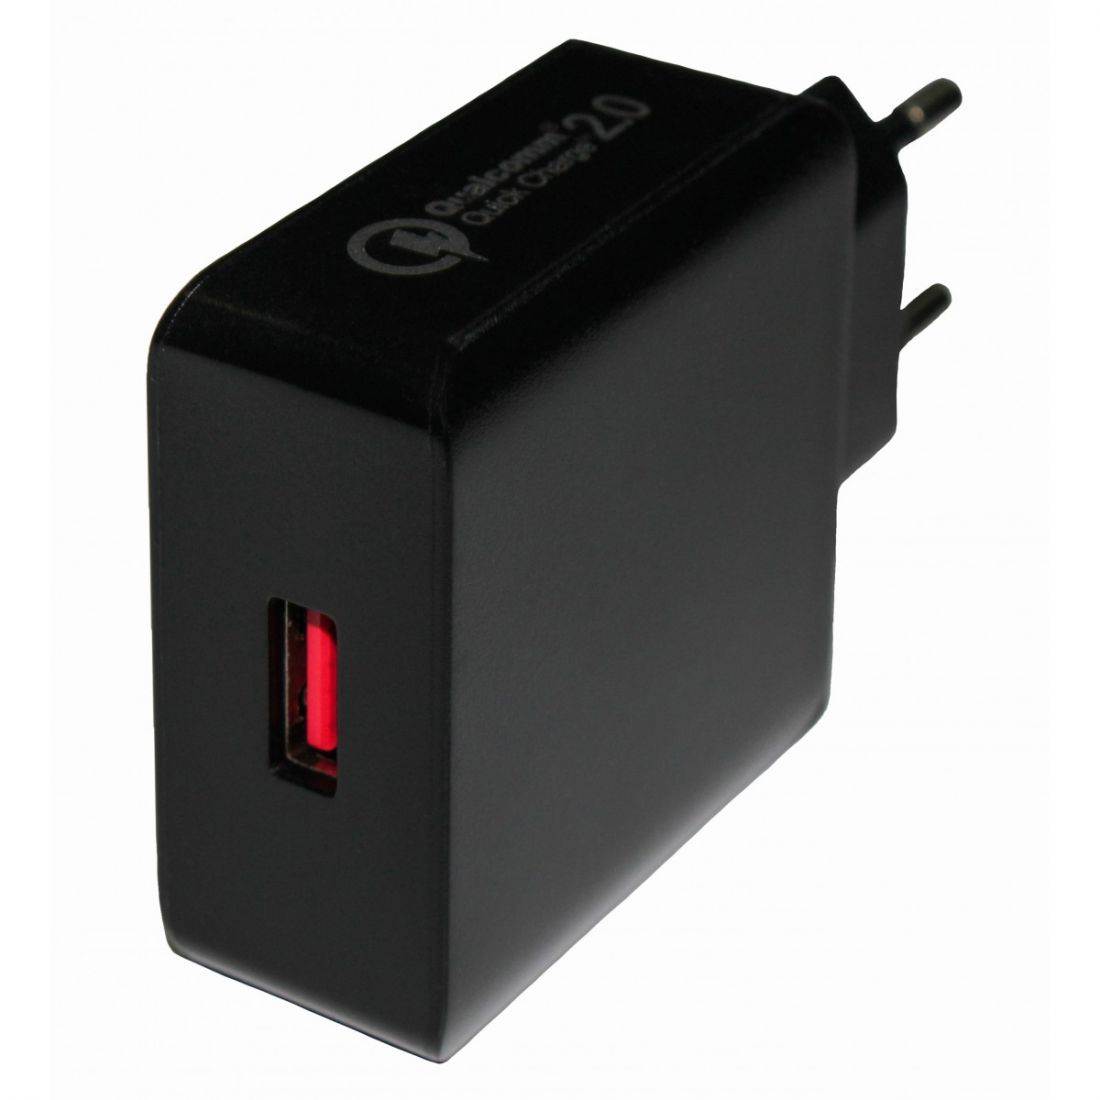 Зарядное устройство Qualcomm Quick Charge 2.0 USB (5V-3A quick charge, 9V-2A, 12V-1.5A)